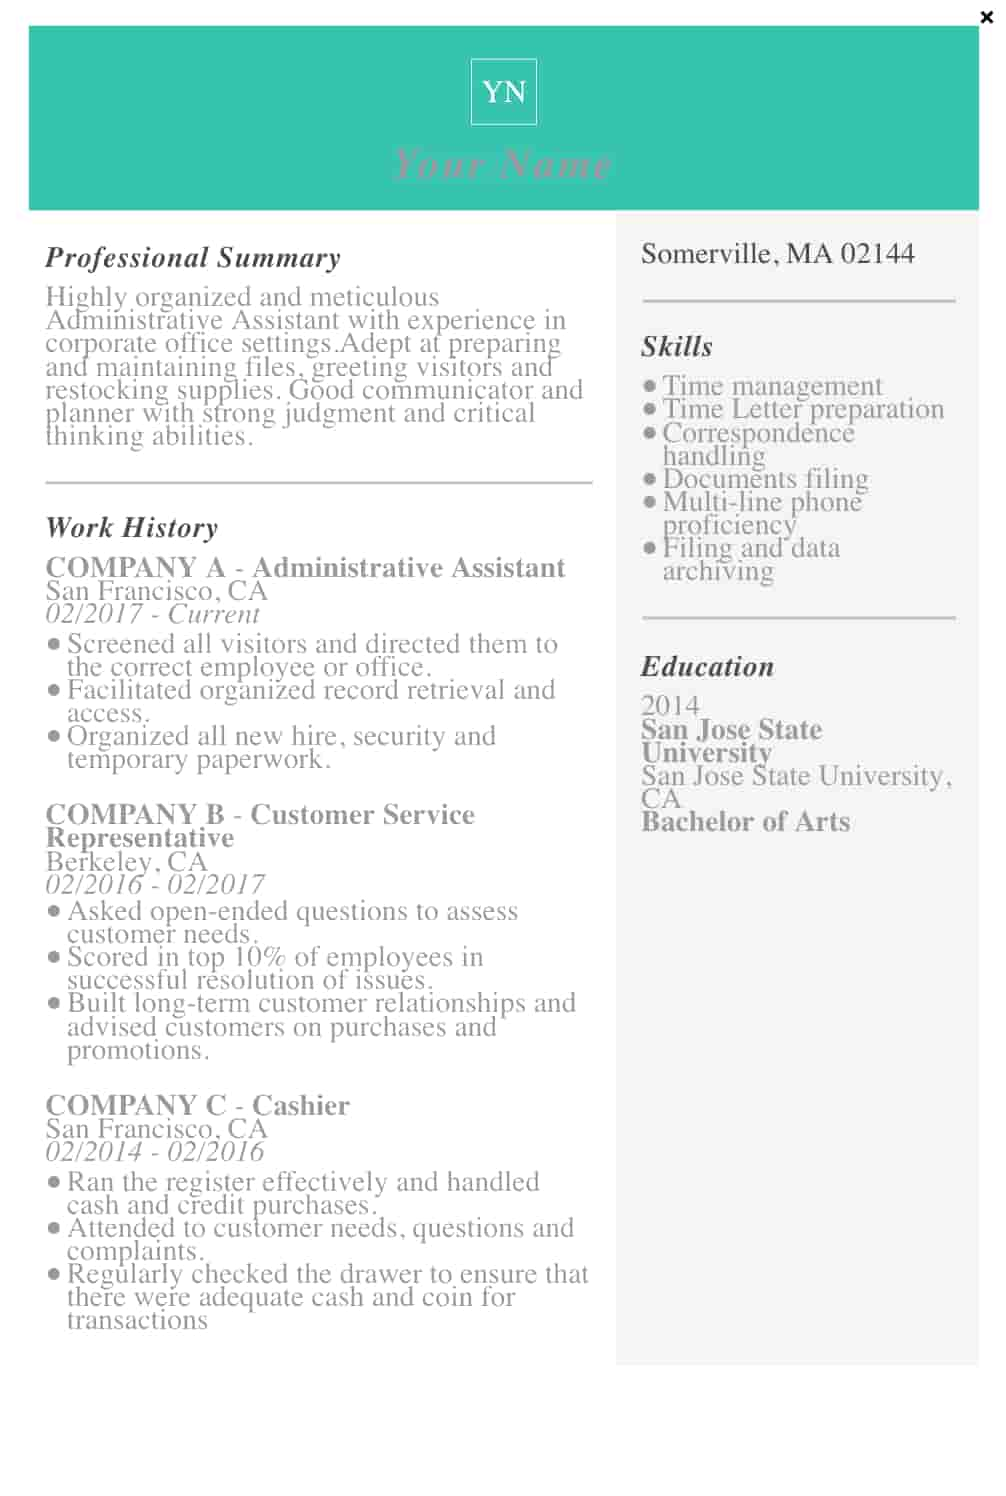 29 Free Resume Templates for Microsoft Word & How to Make ...